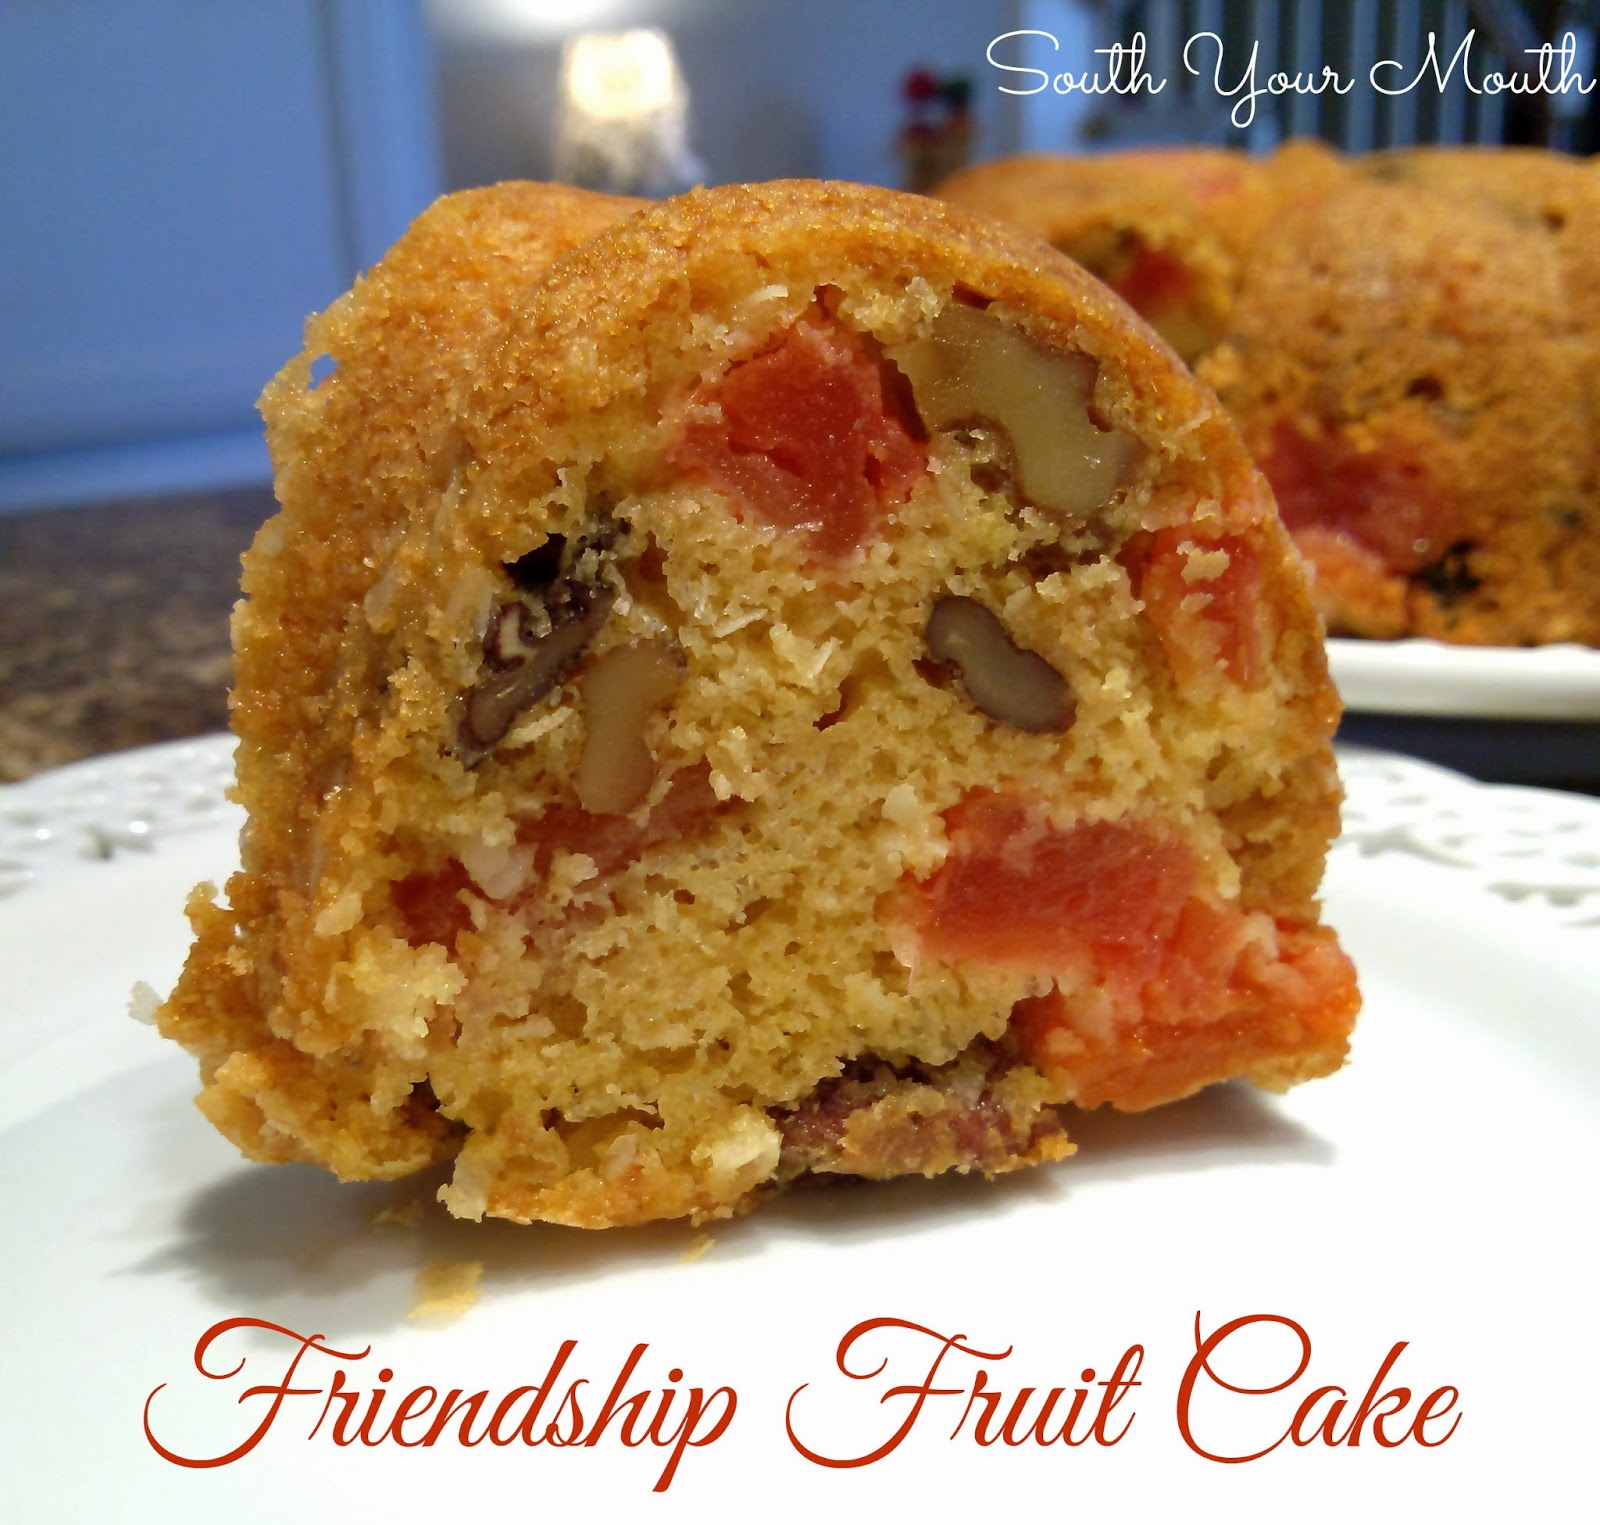 Day Friendship Cake Recipe